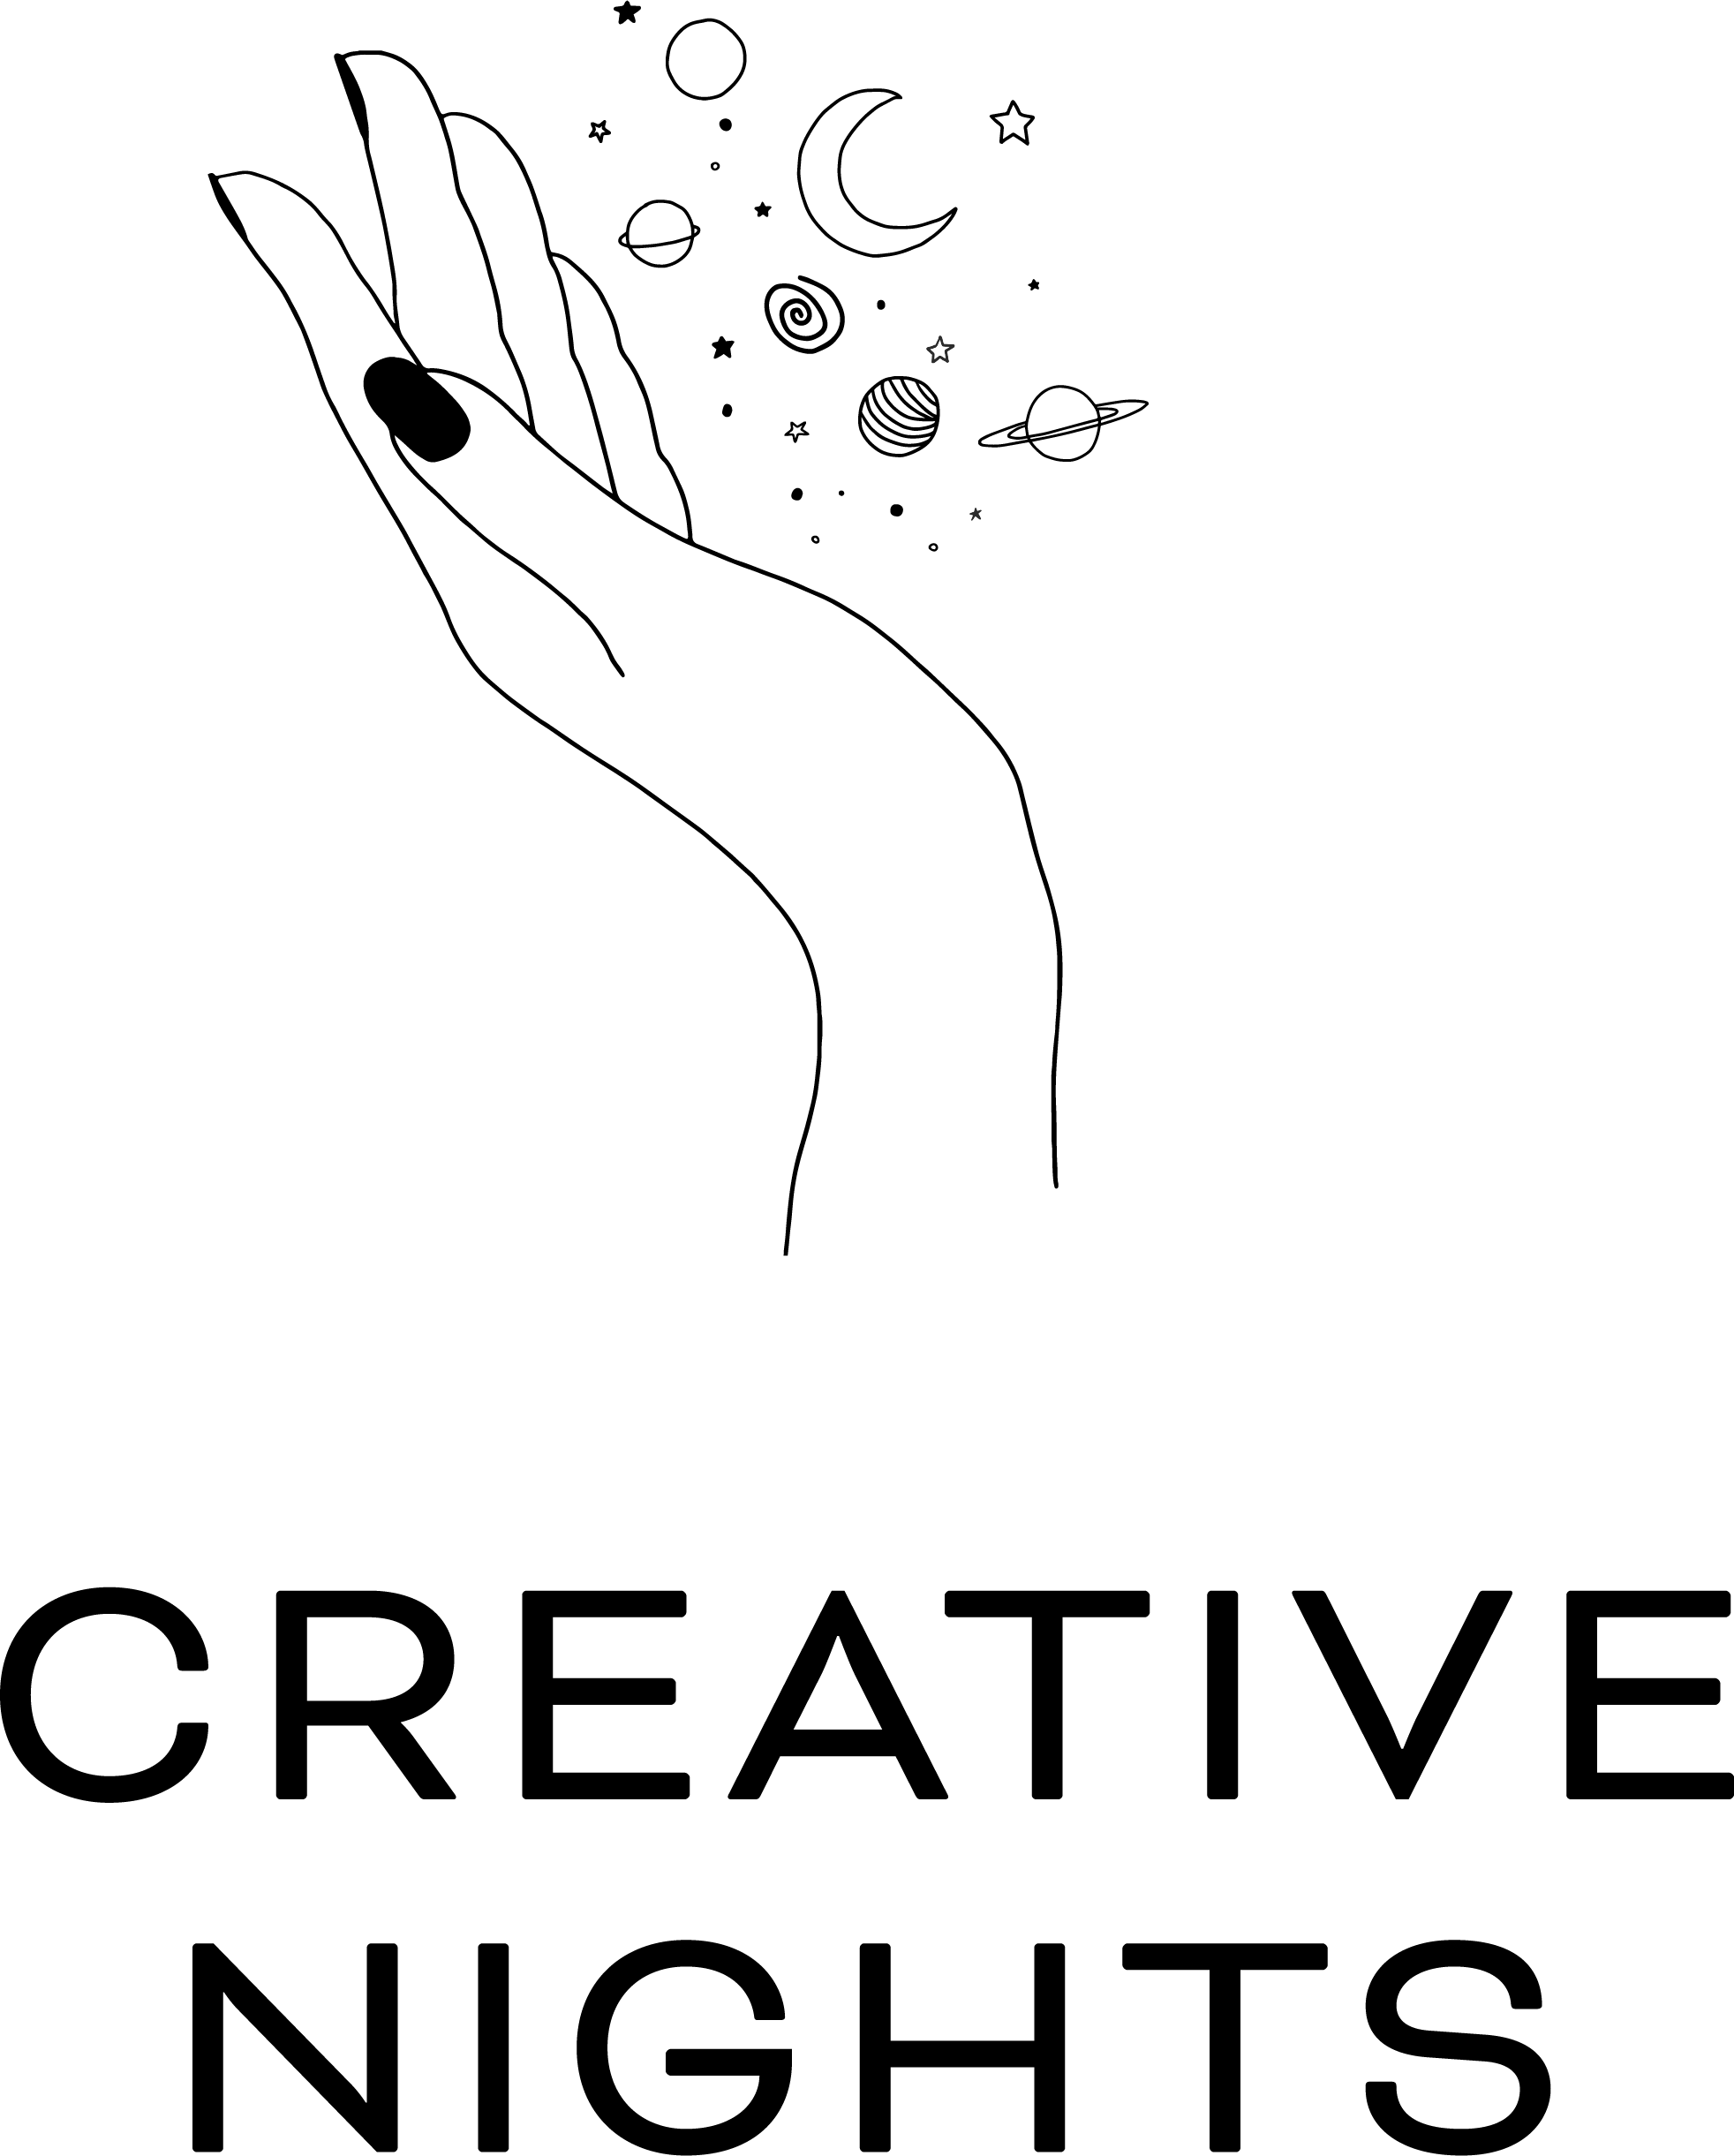 creativenights.org